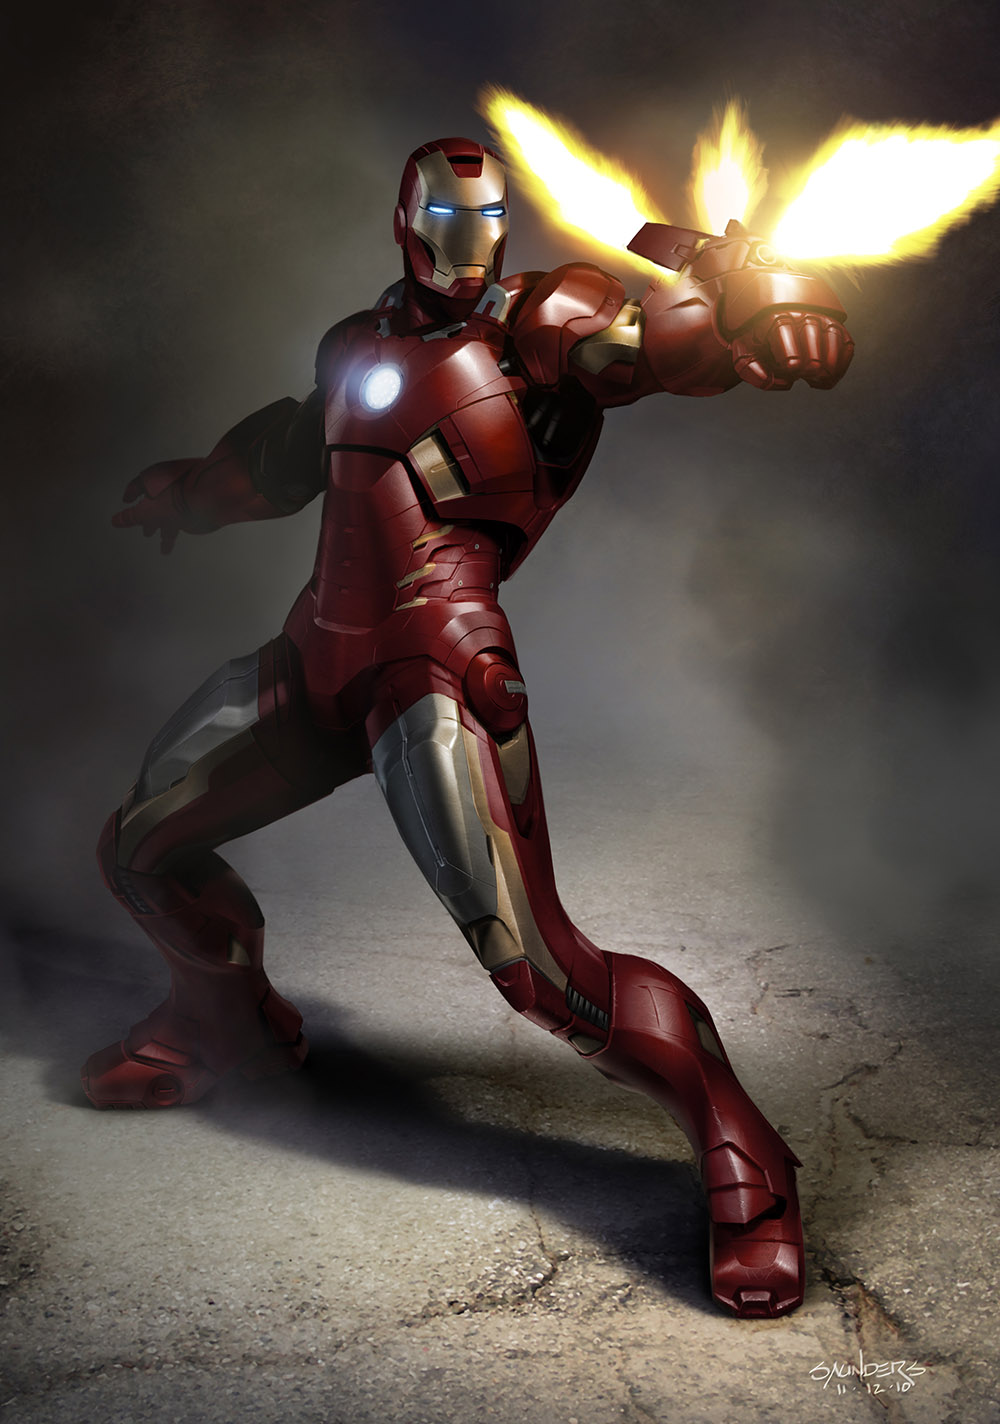 37 inspiring 39 the avengers 39 concept art images by phil - Images avengers ...